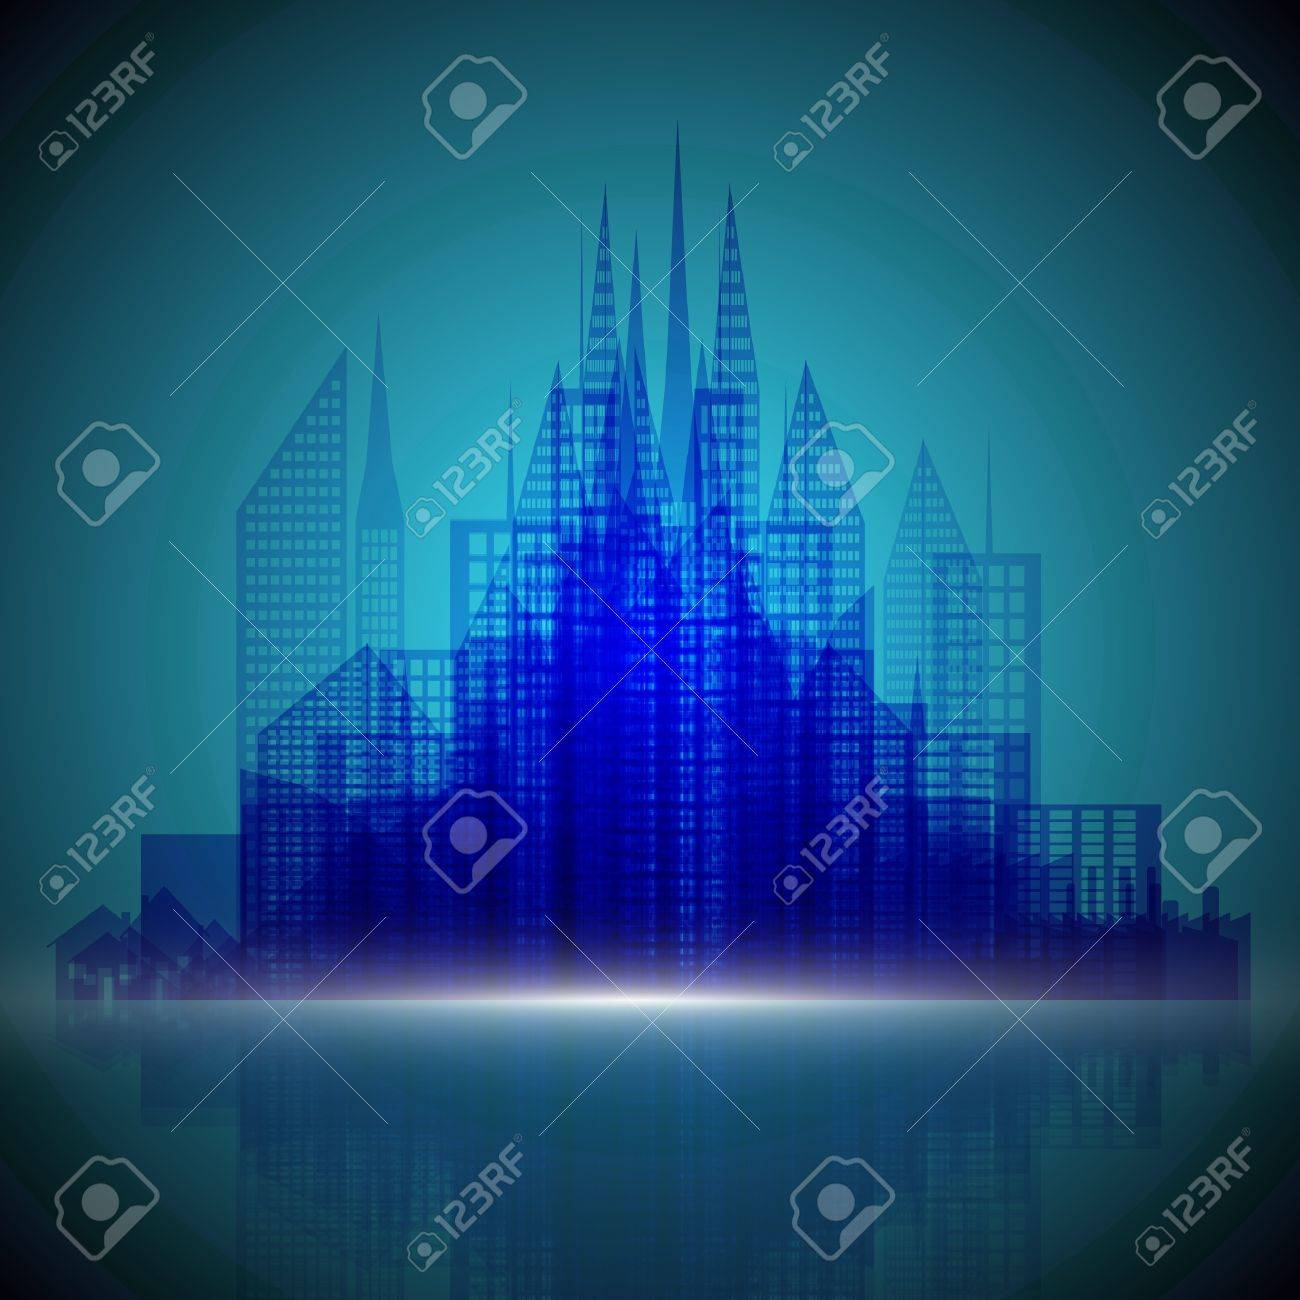 Abstract architecture background Stock Vector - 17617935